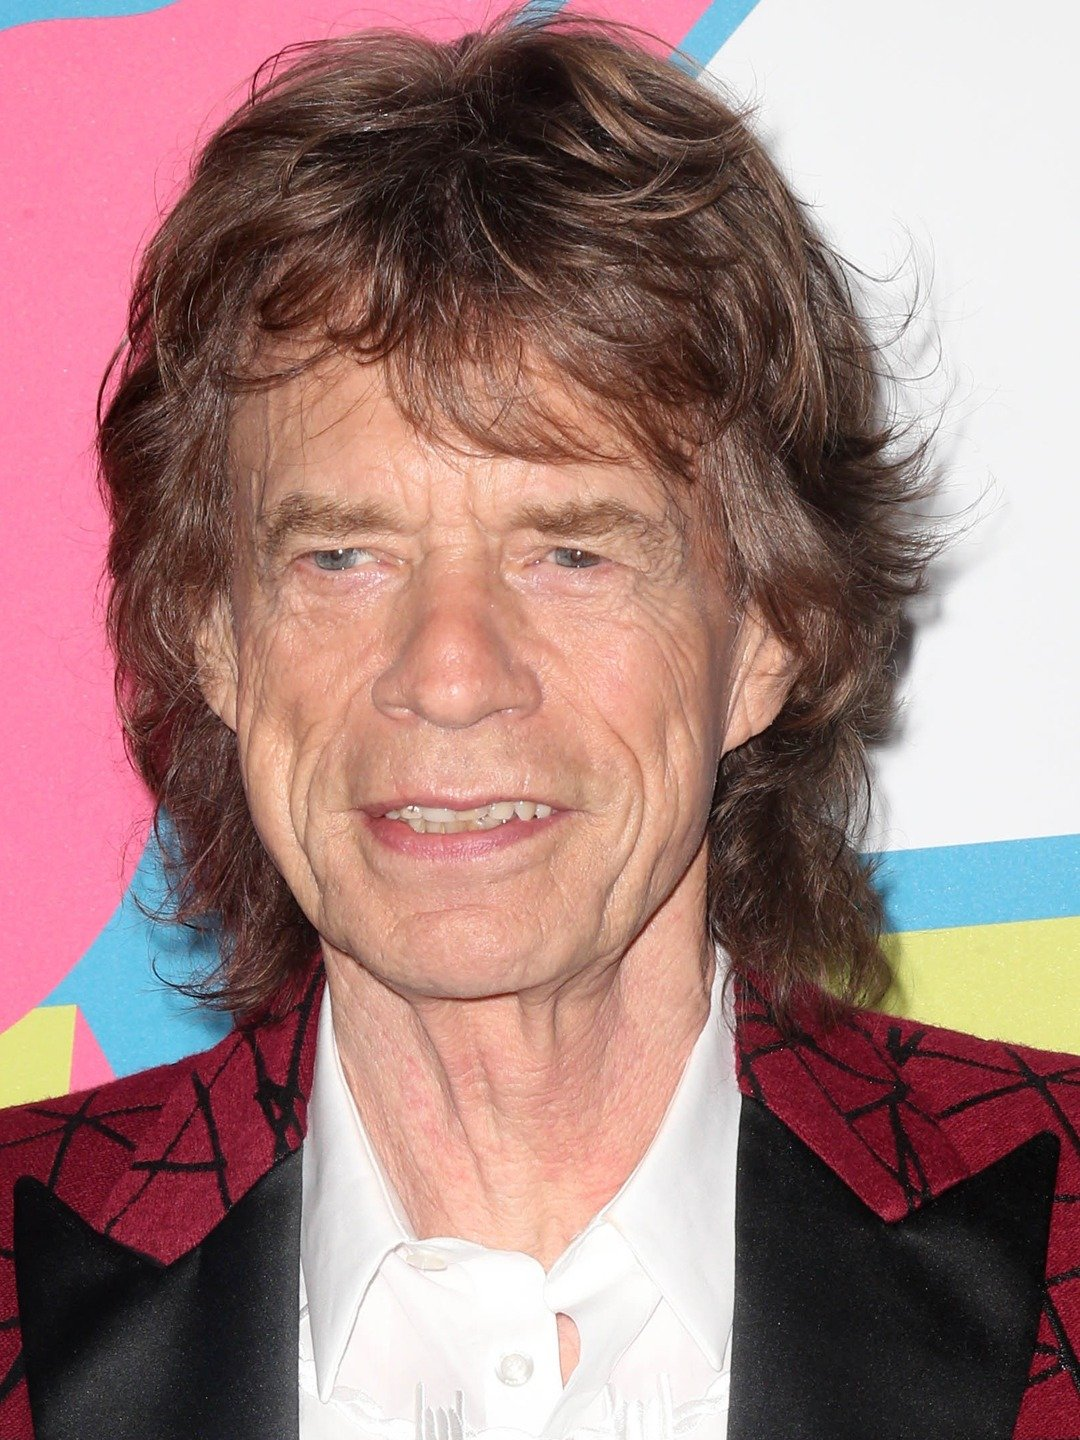 Mick Jagger English, British Singer, Songwriter, Actor, Producer